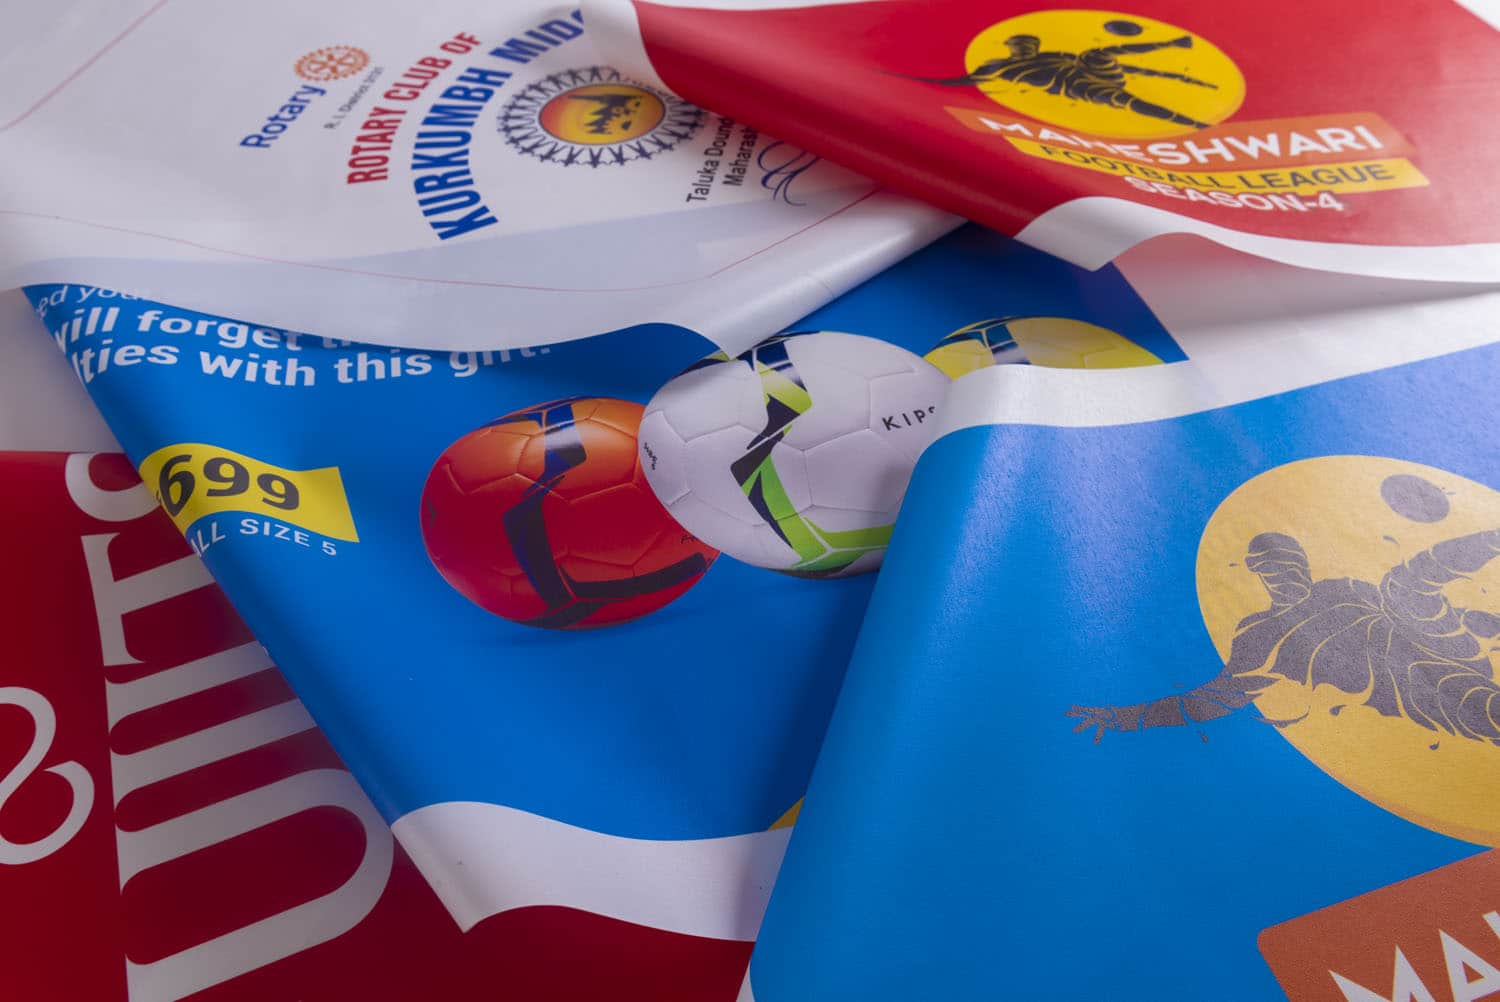 colourful flags and banners printed on cloth material spread out on a flat surface